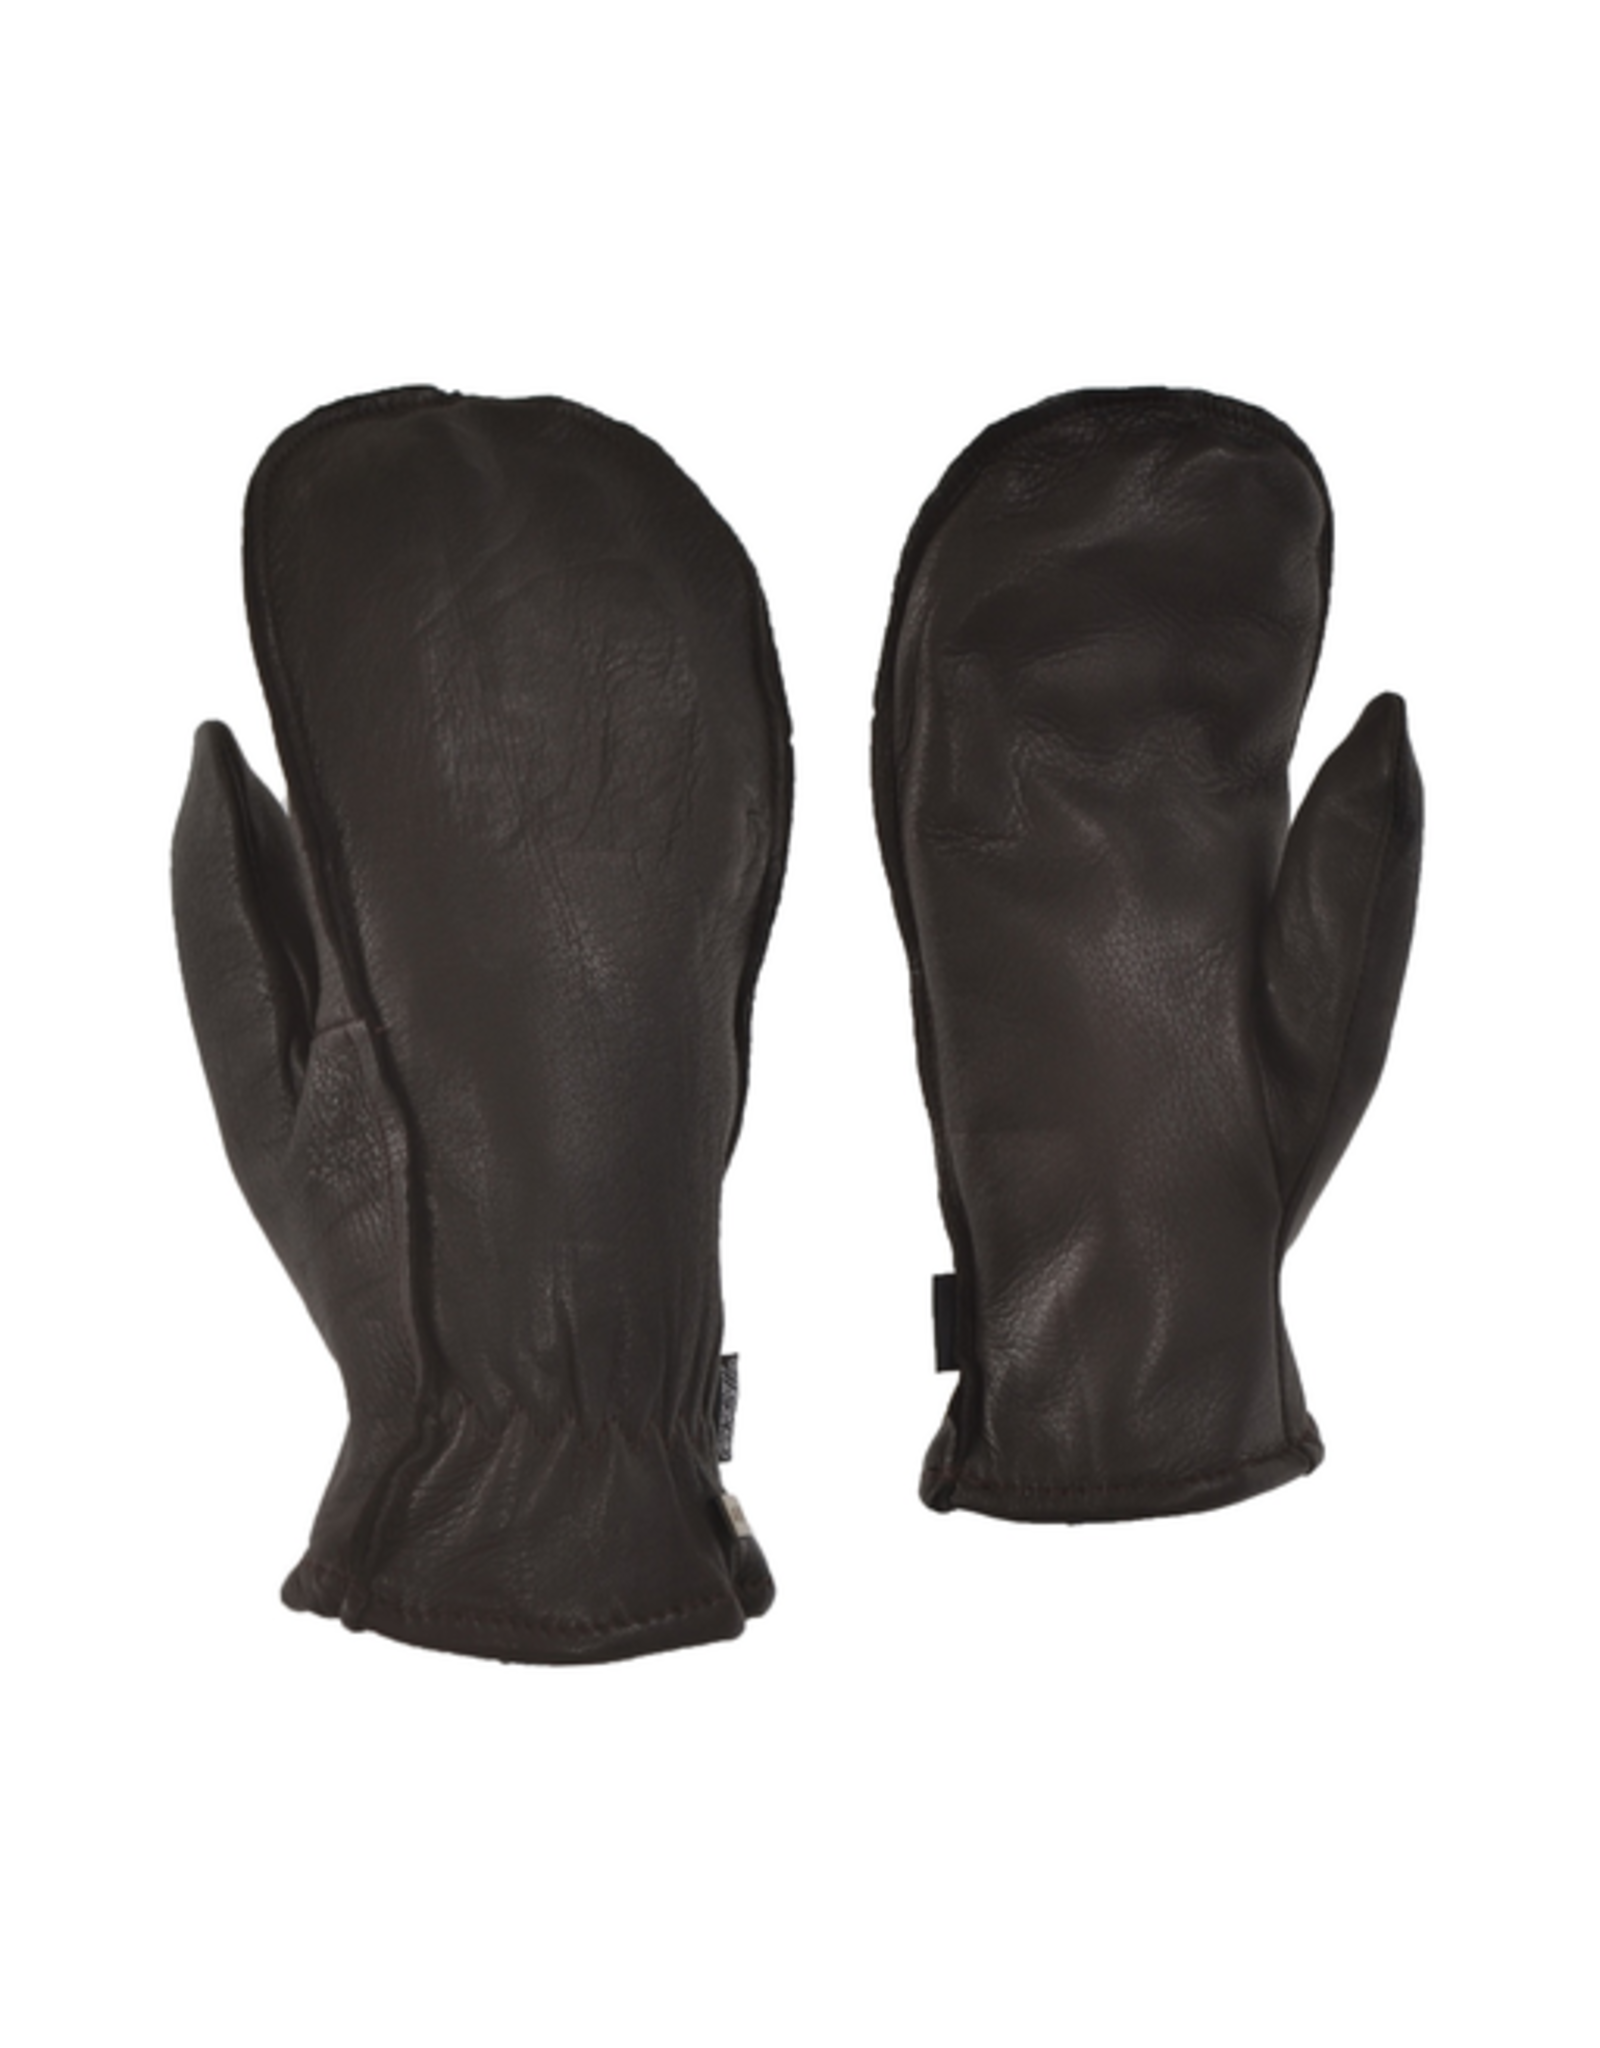 GKS GKS Deerskin Mitt with Fleece Liner